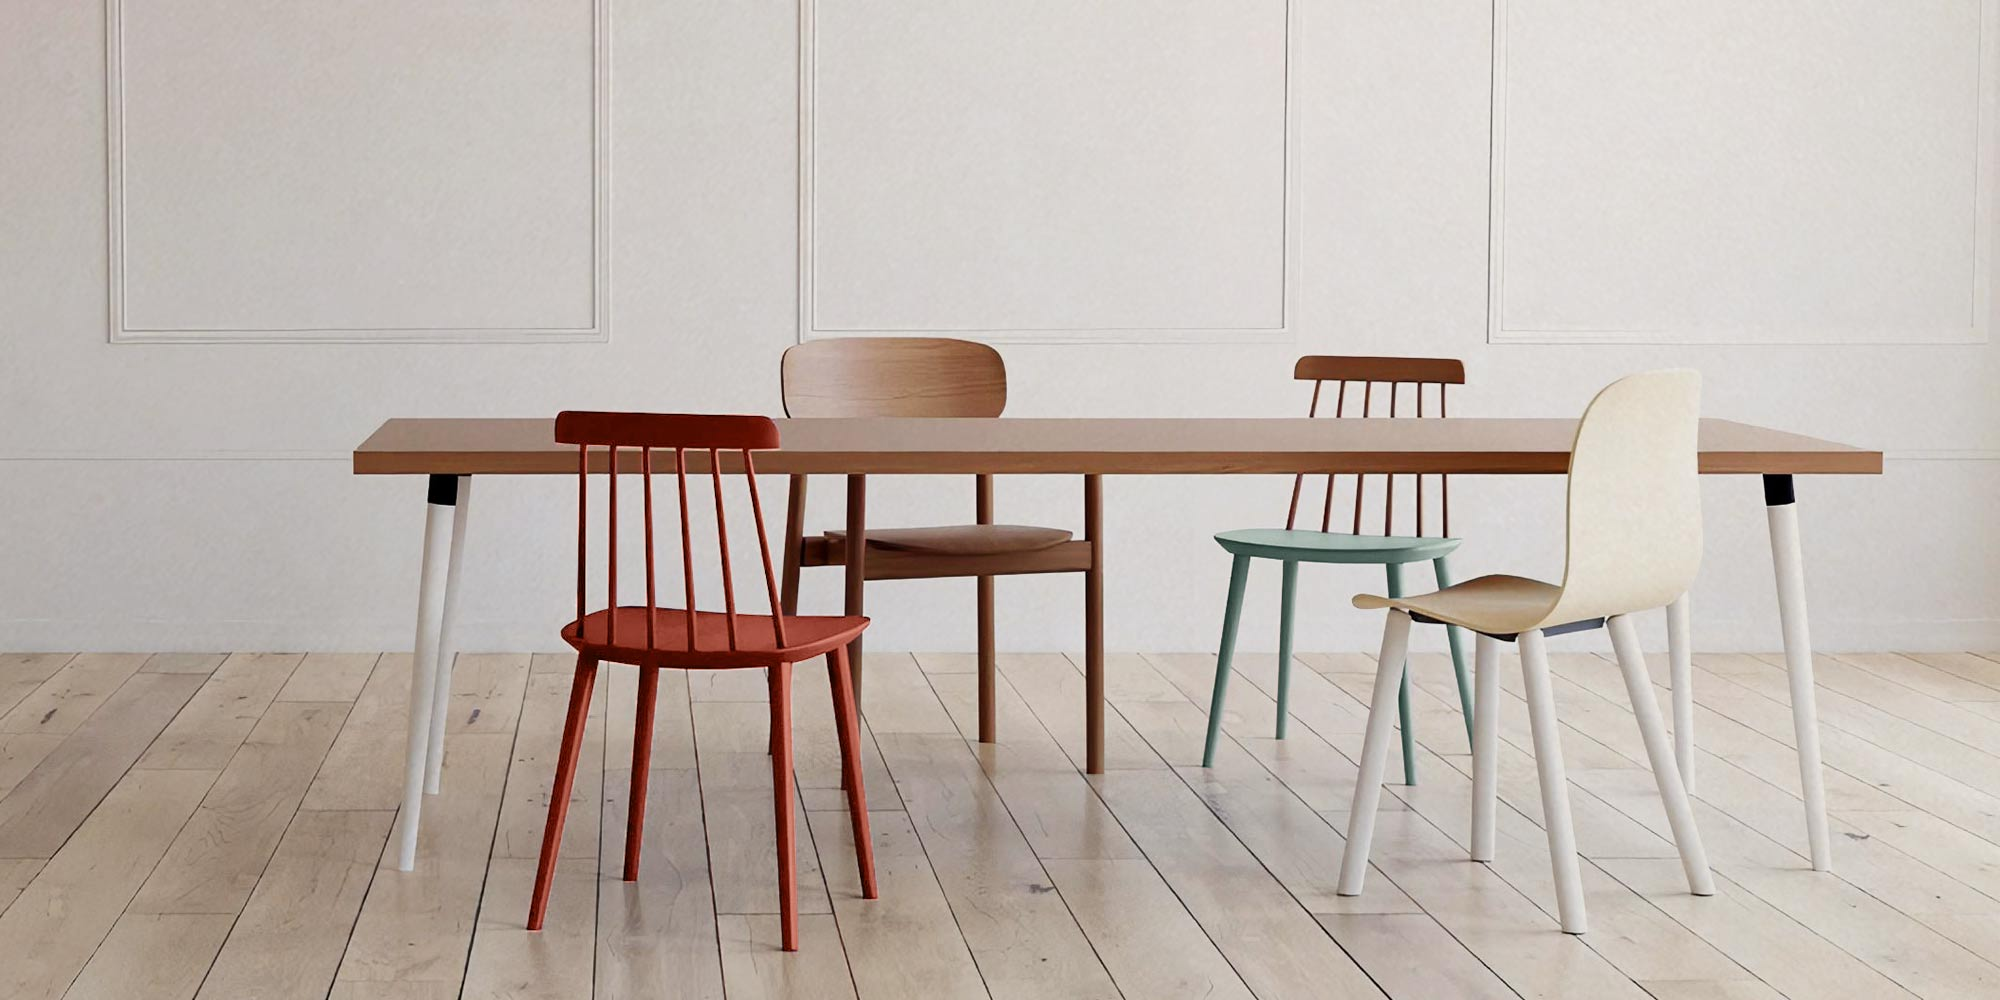 wooden chairs with different designs besides a table